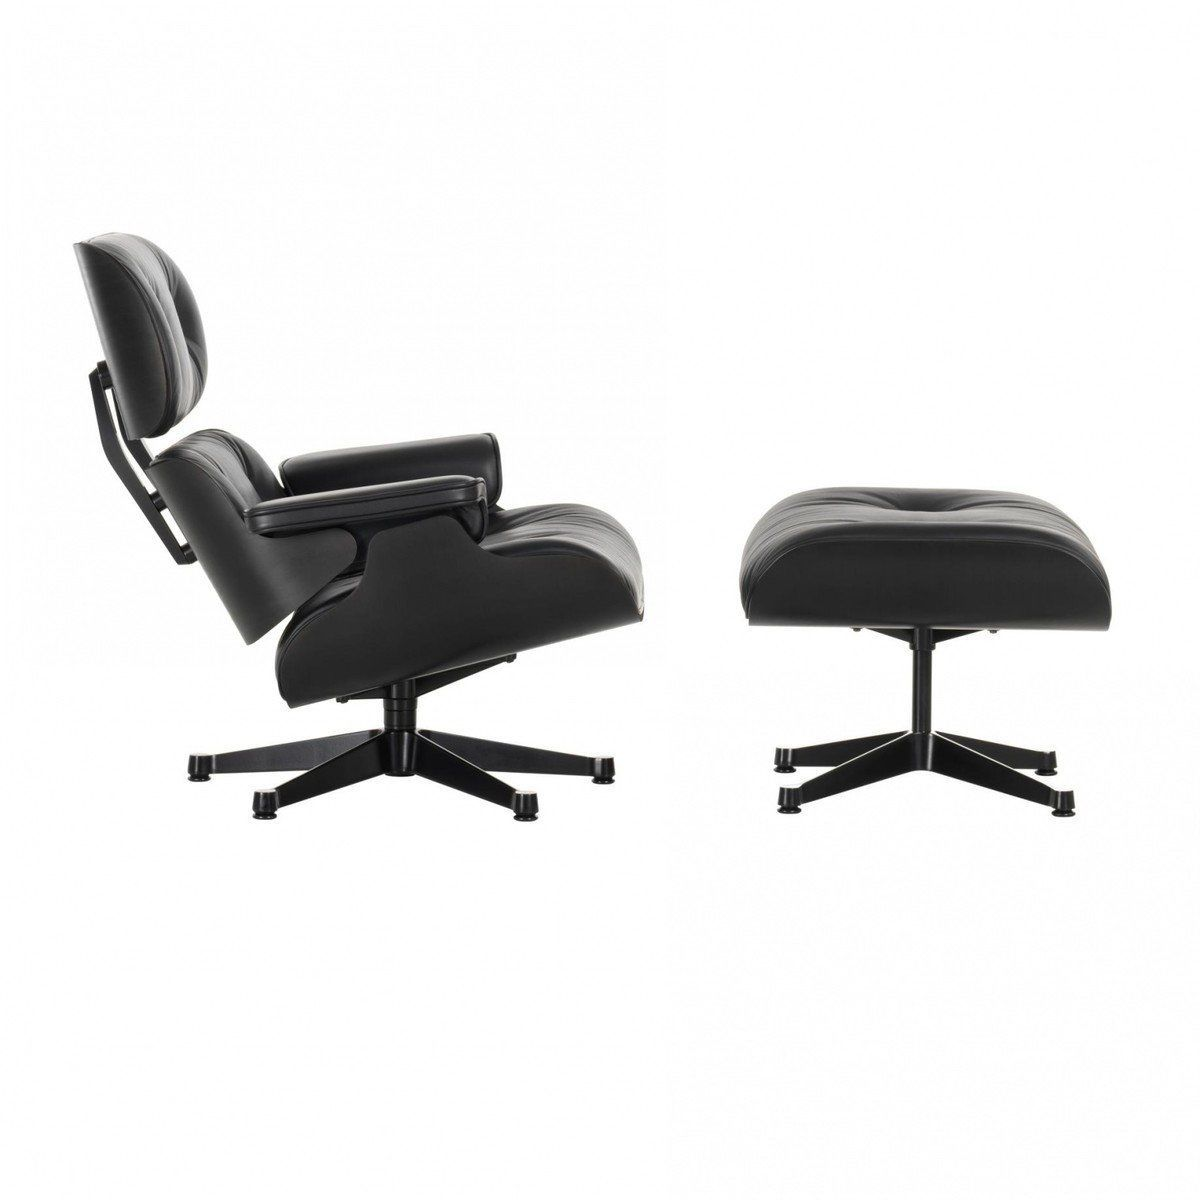 Eames lounge chair sessel ottoman vitra for Eames sessel